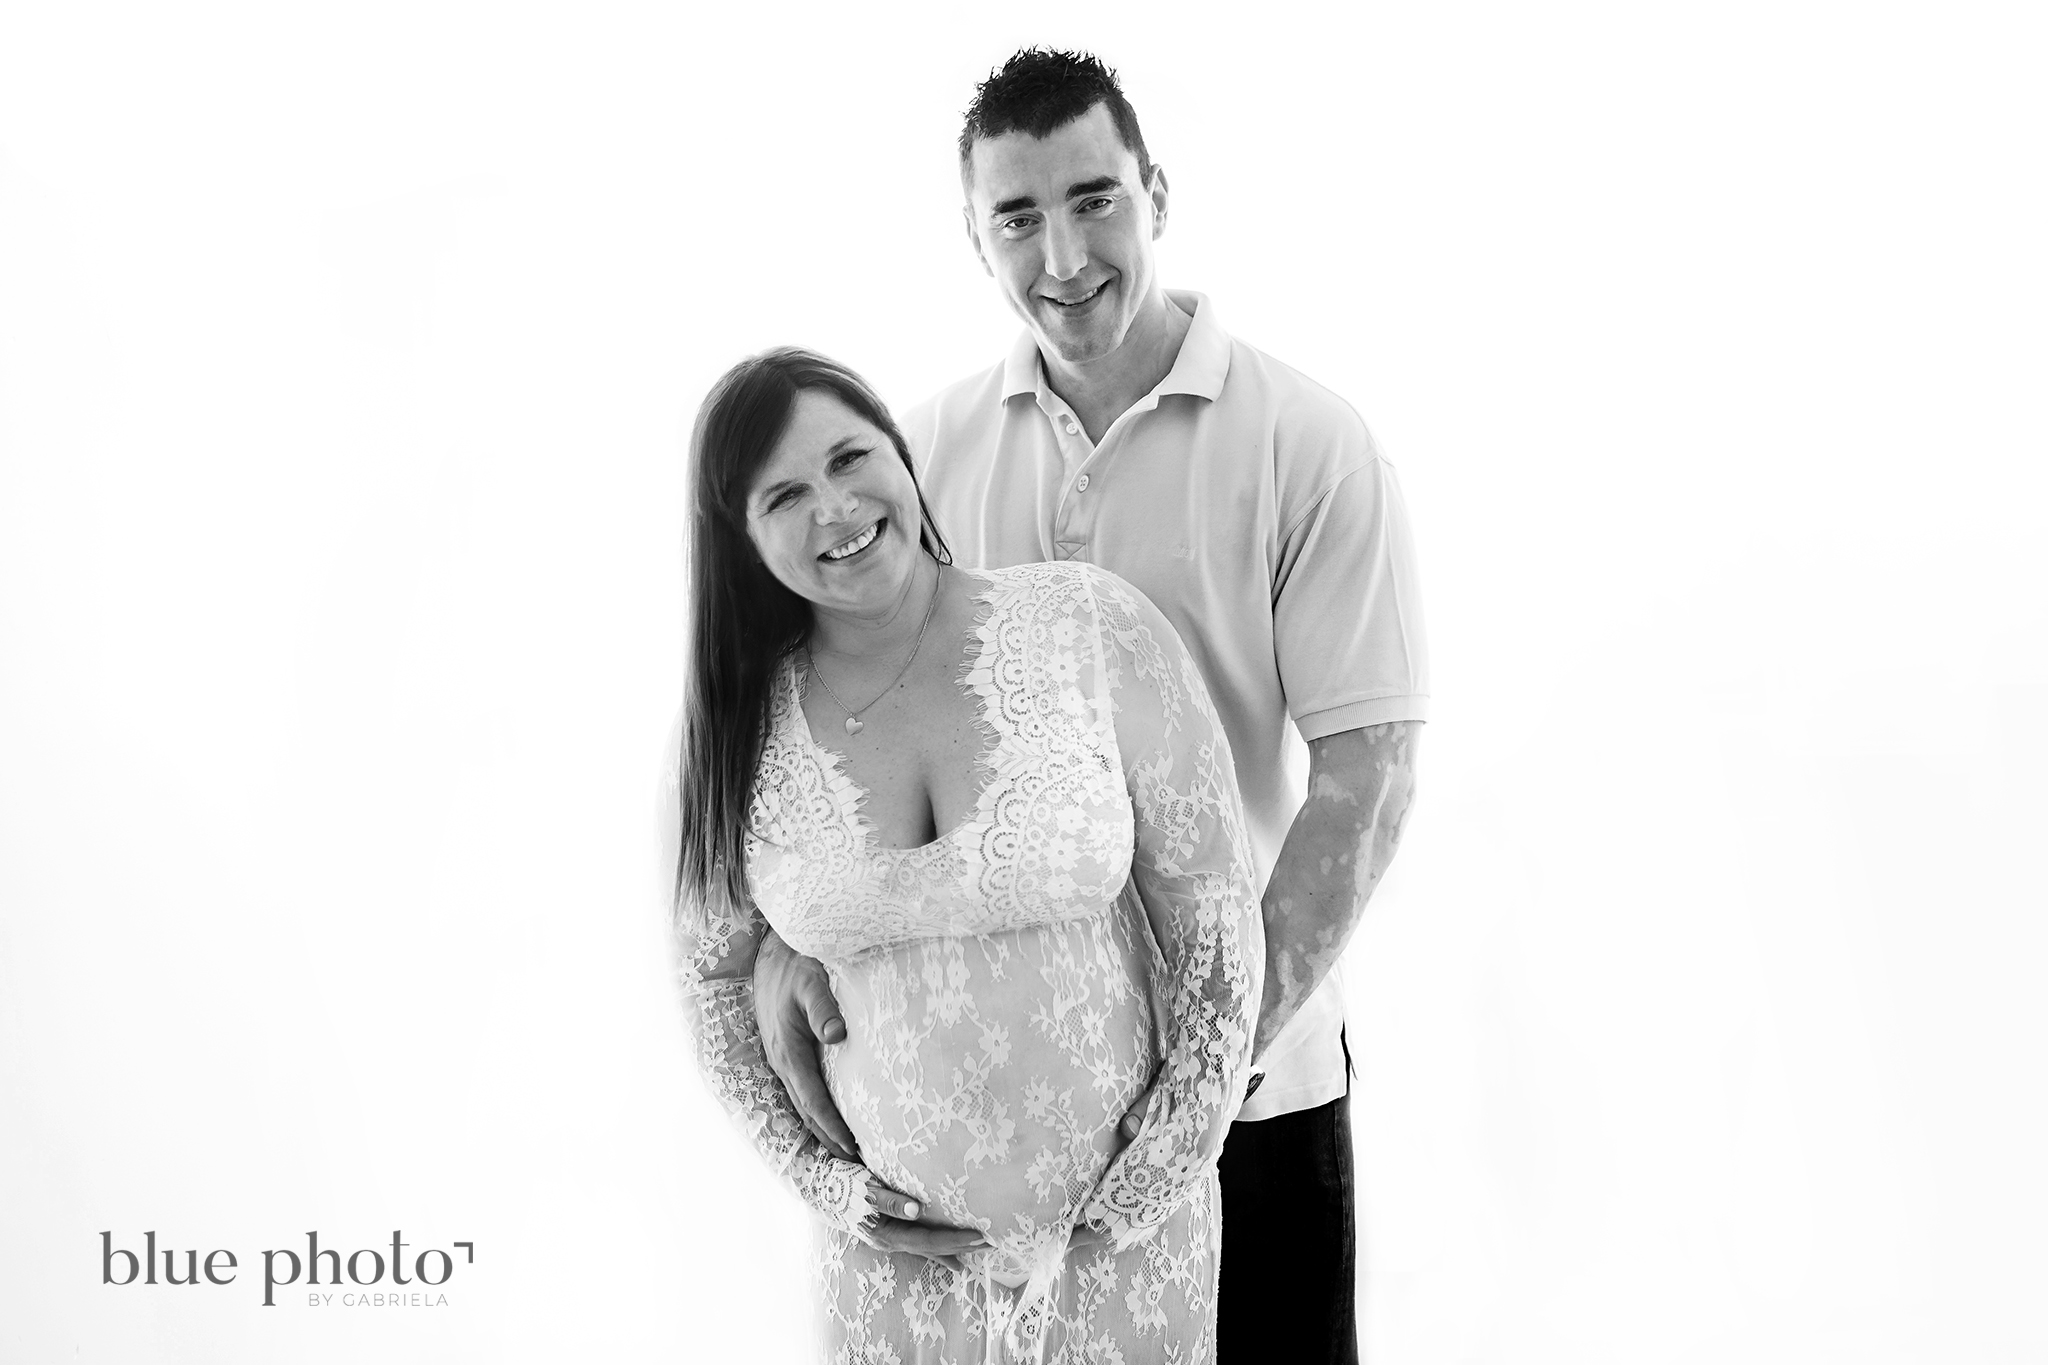 Karolina and her studio maternity session in West London